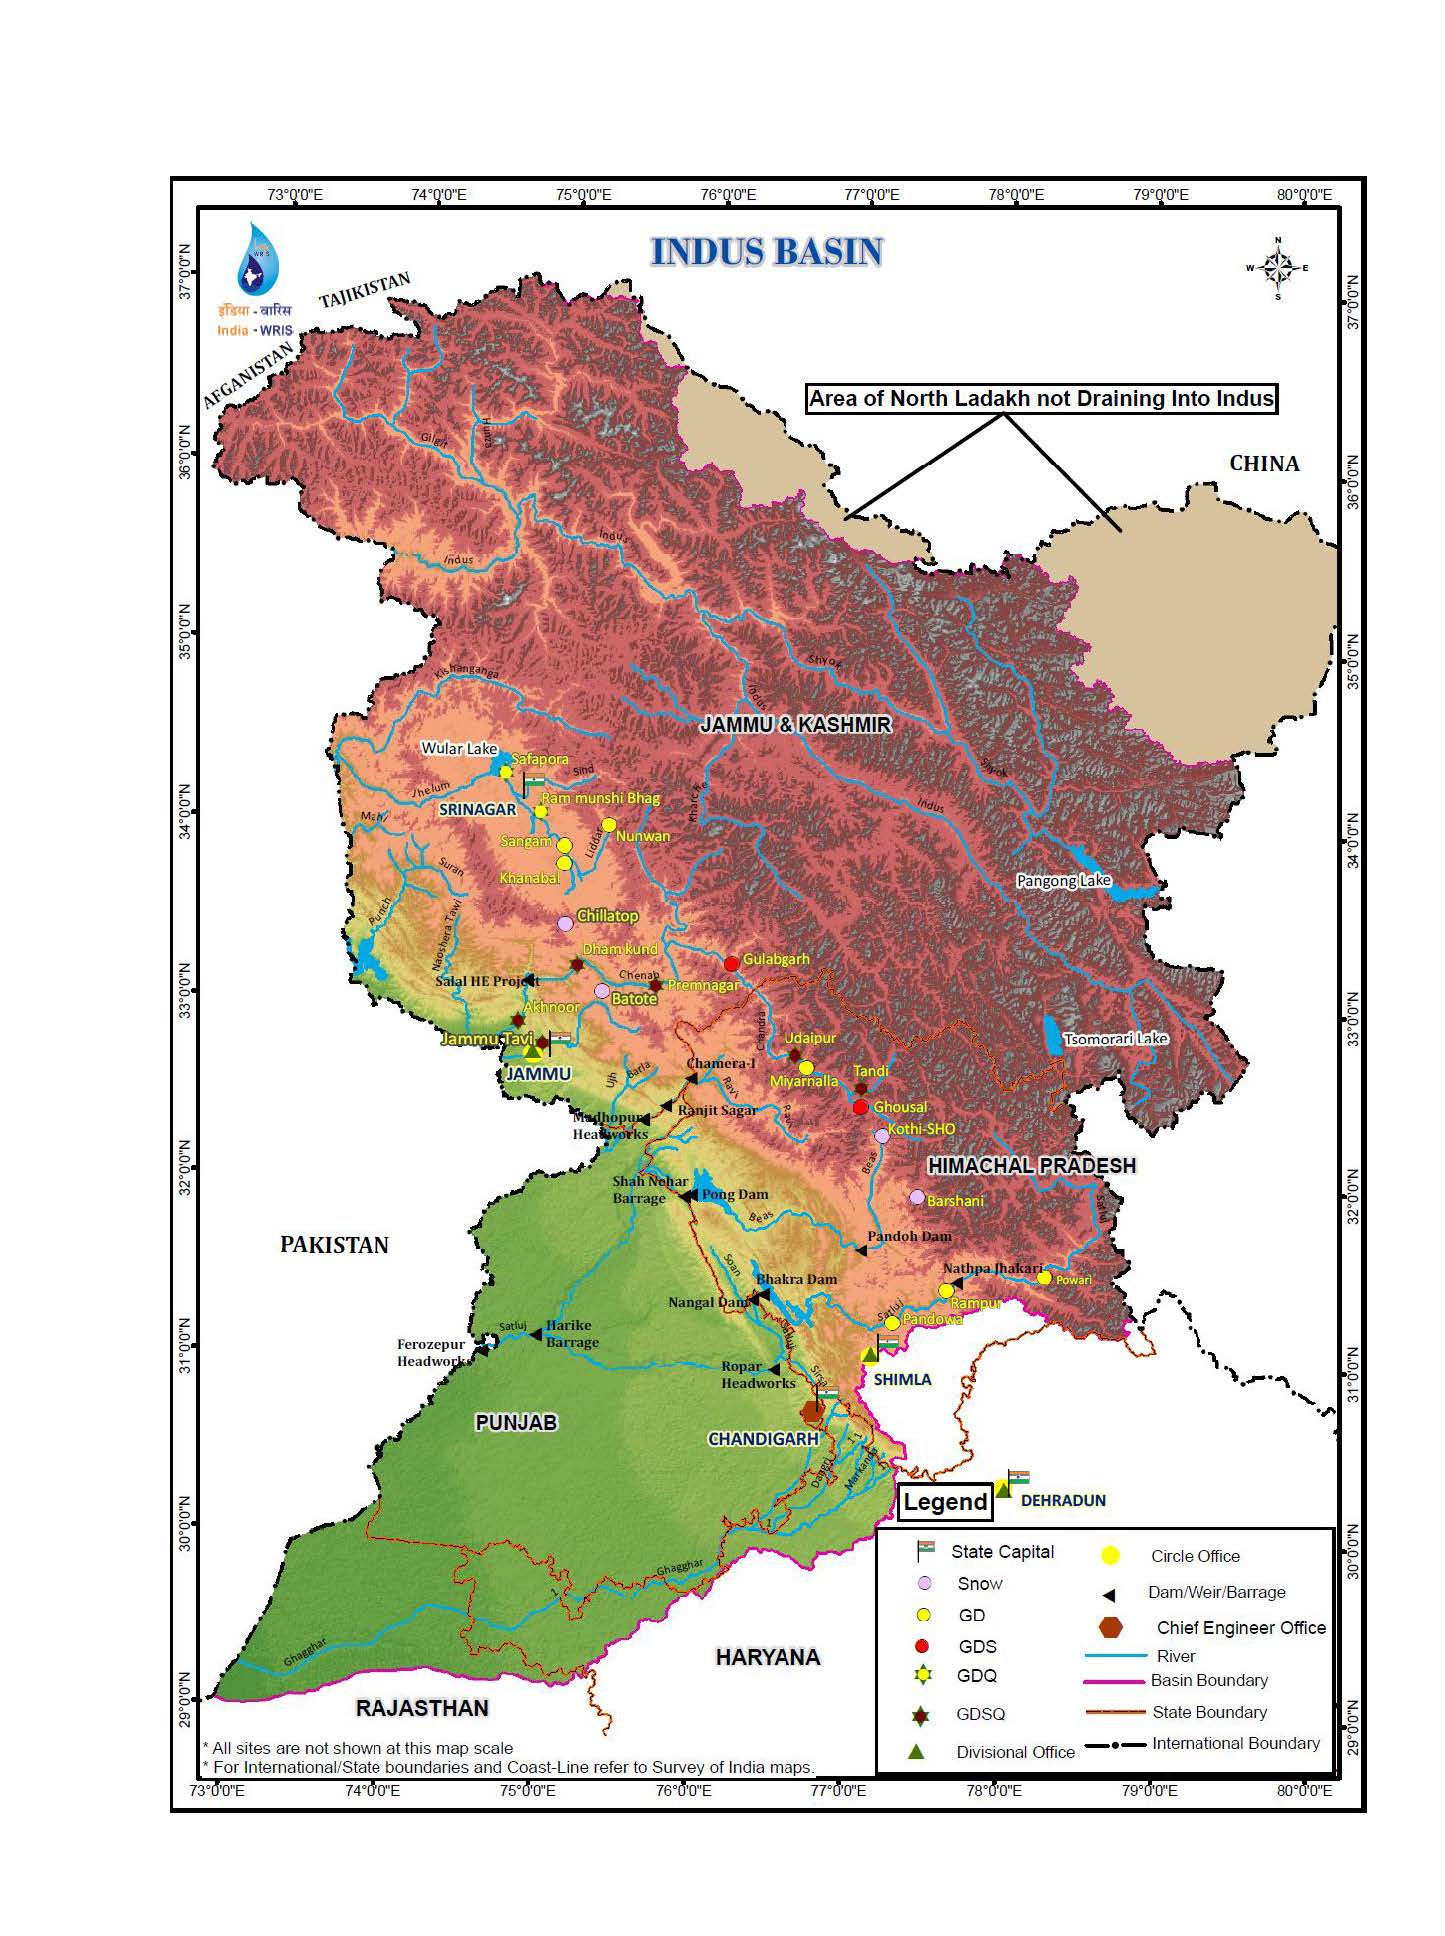 Regional Offices - Central Water Commoission on irrawaddy river on map, himalayan mountains on map, persian gulf on map, gulf of khambhat on map, gobi desert on map, indian ocean on map, kashmir on map, krishna river on map, bangladesh on map, great indian desert on map, ganges river on map, lena river on map, himalayas on map, yangzte river on map, deccan plateau on map, japan on map, yellow river on map, aral sea on map, eastern ghats on map, jordan river on map,